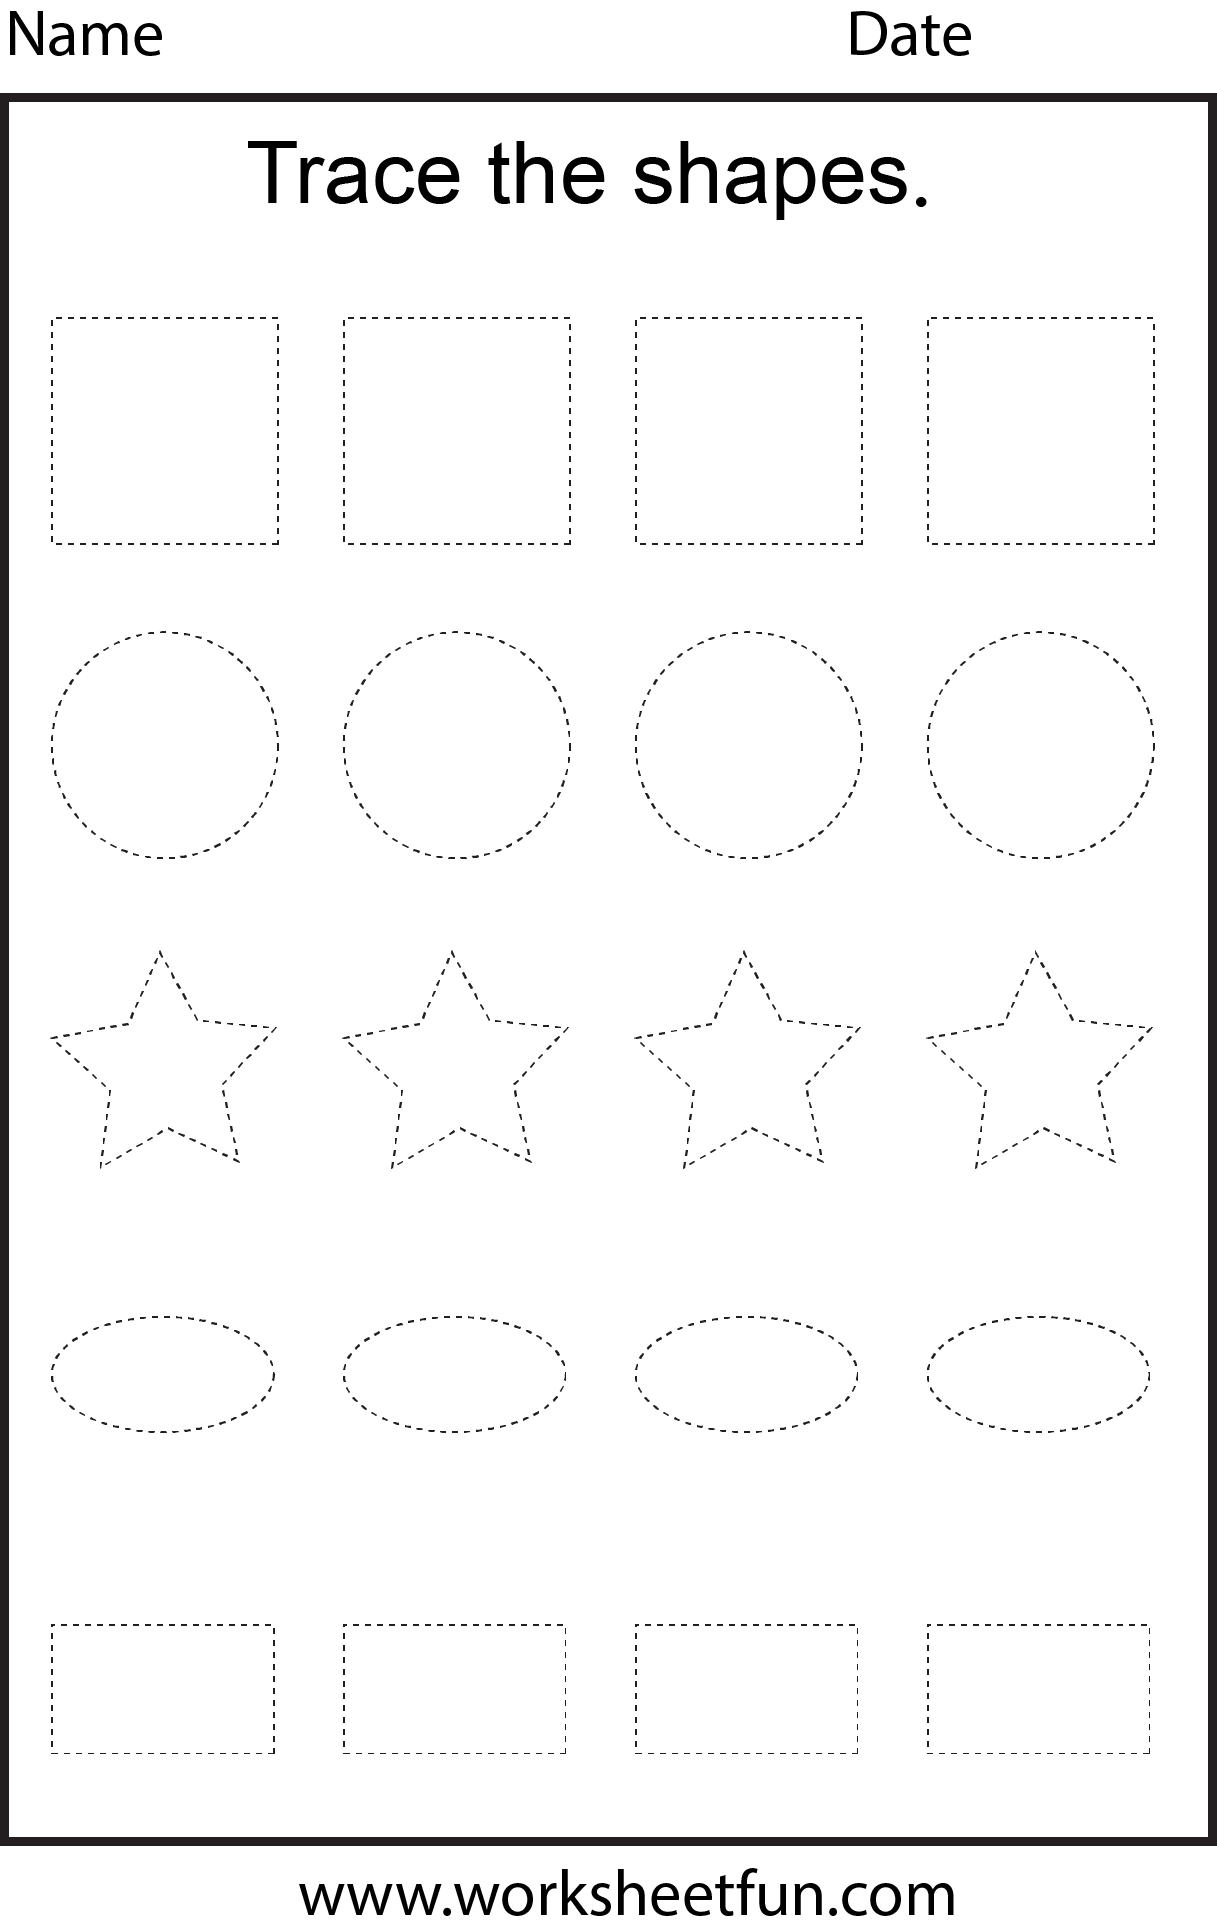 Shape Tracing 1 Worksheet Free Printable Worksheets